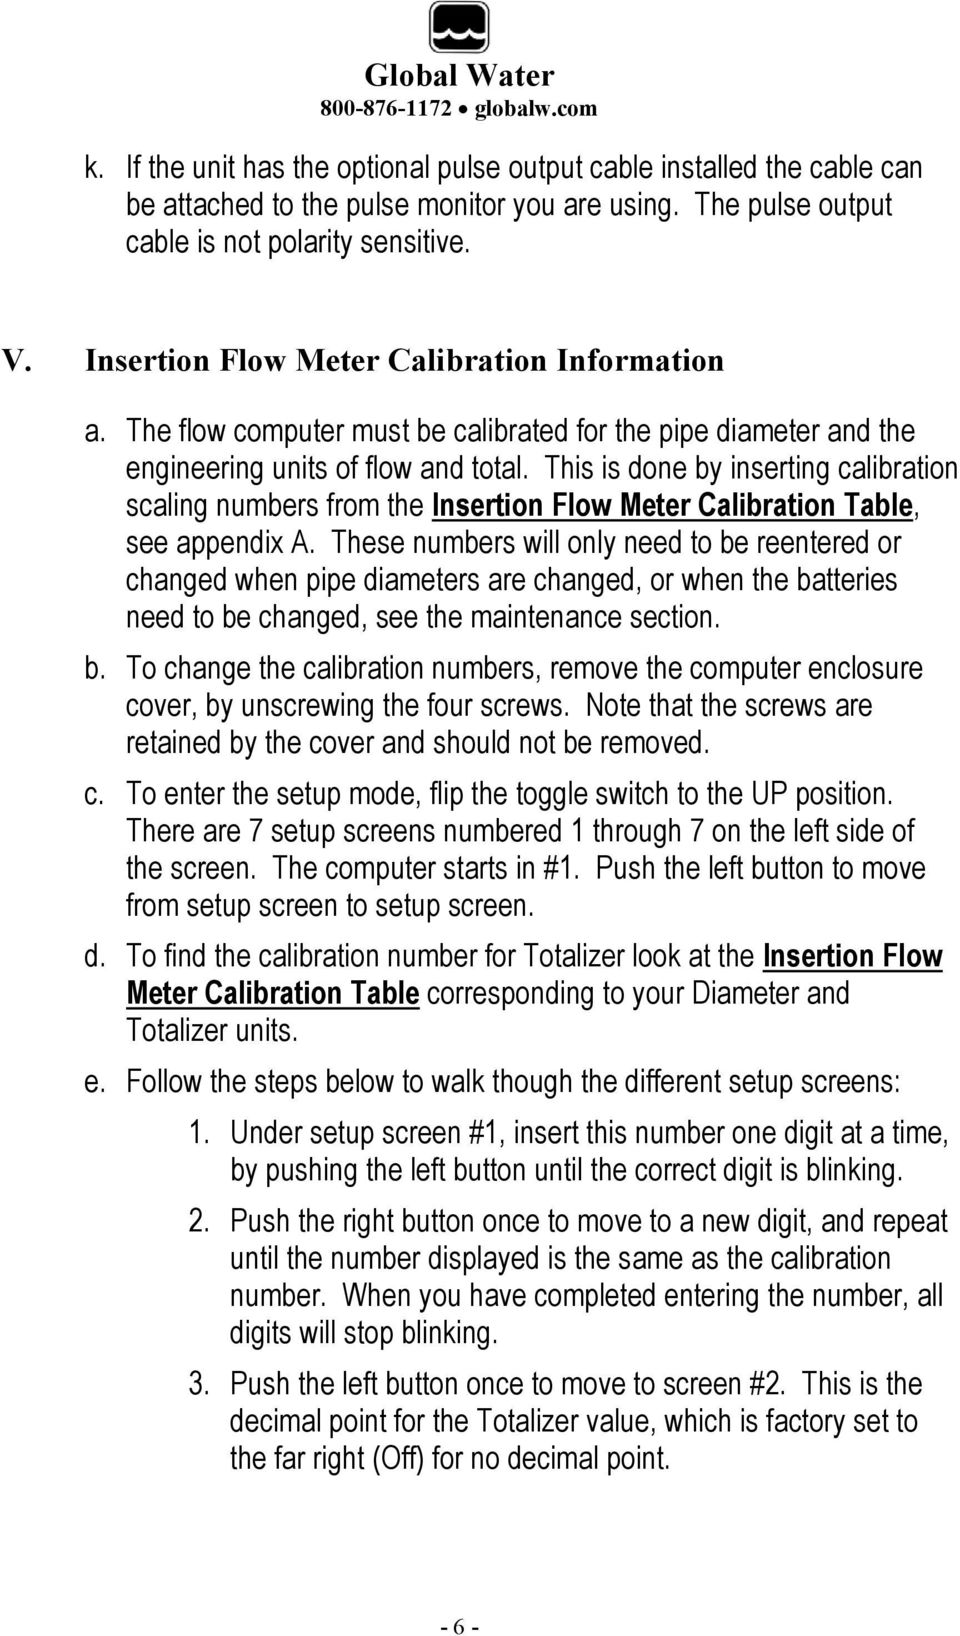 This is done by inserting calibration scaling numbers from the Insertion Flow Meter Calibration Table, see appendix A.